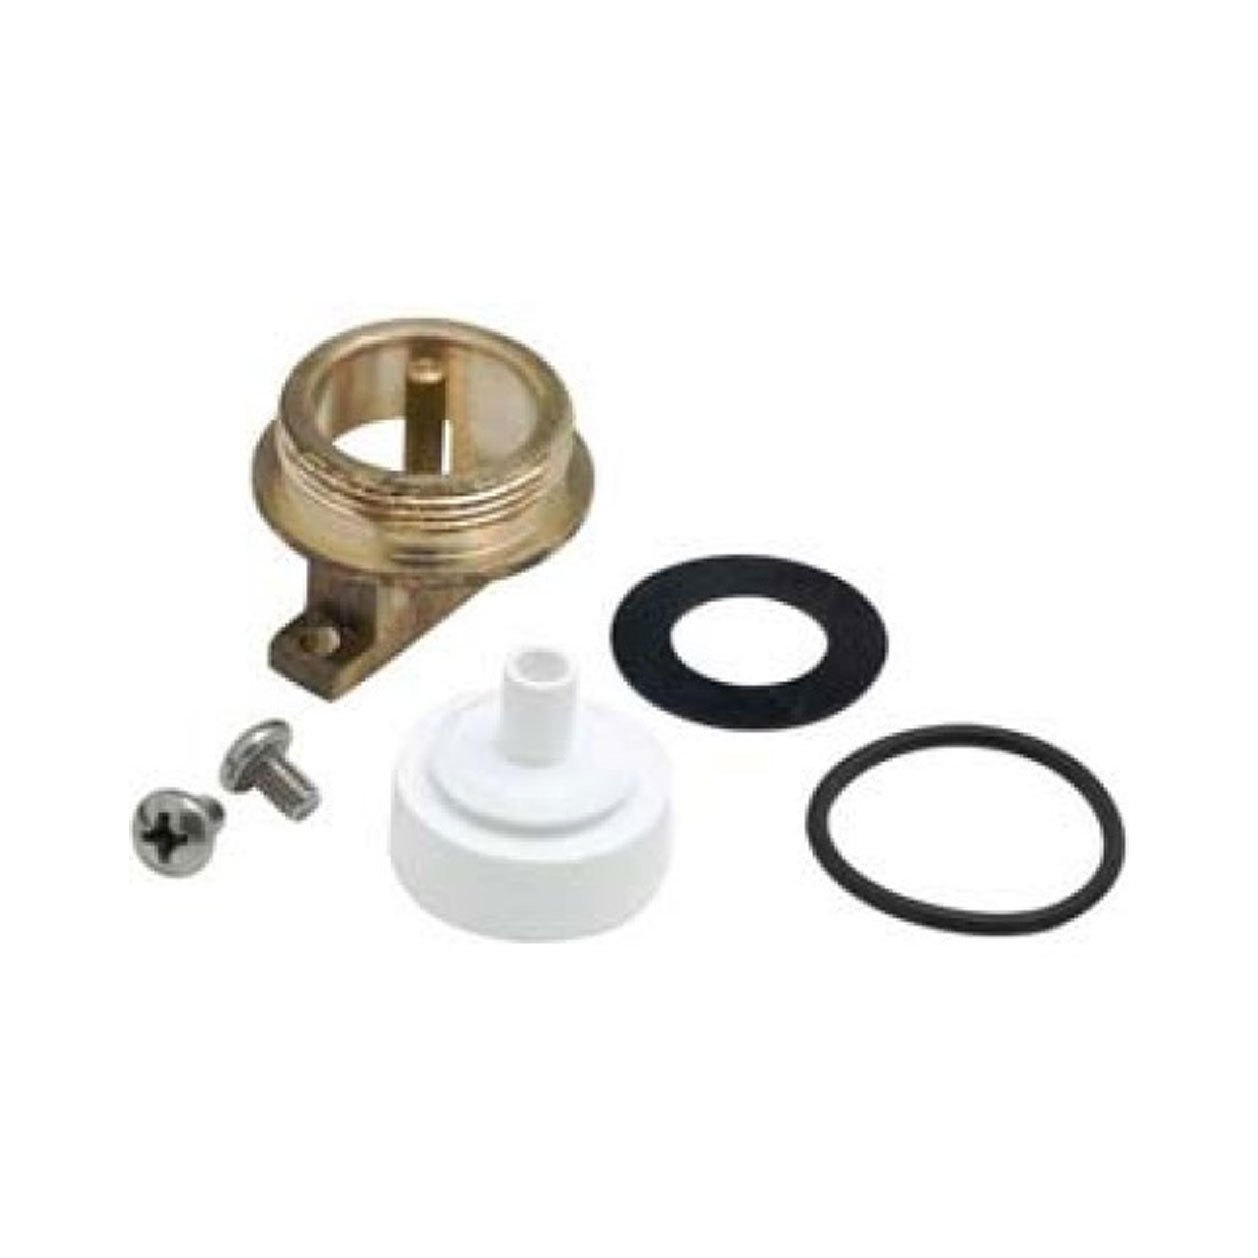 TS Brass B-0969-RK01 Repair Kit for B-0969 Vacuum Breaker Assembly ...